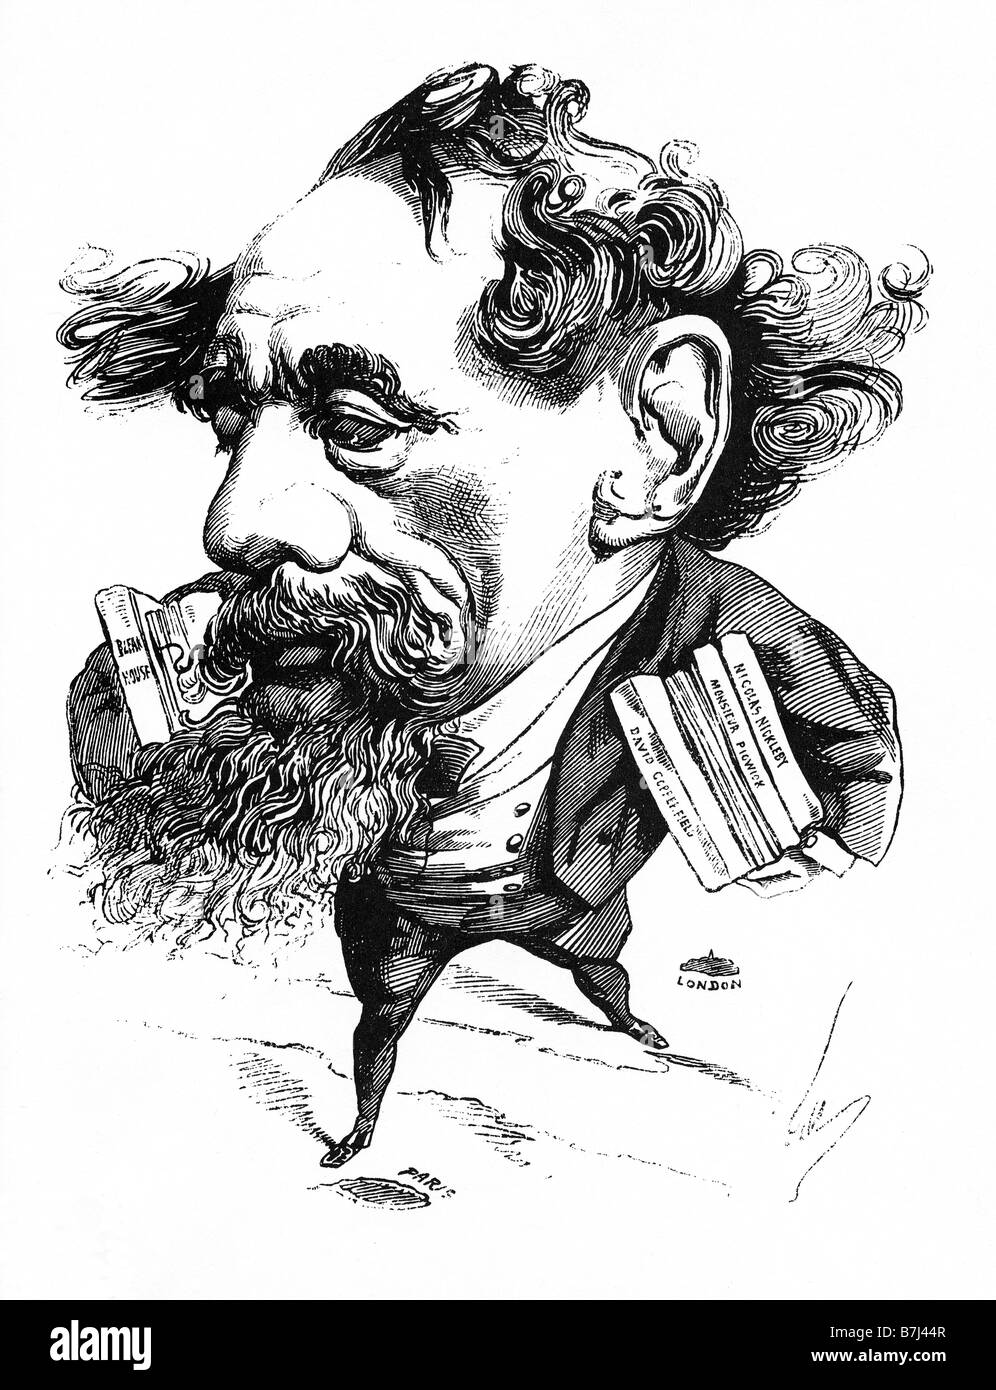 charles dickens 1868 caricature of the great victorian author by charles dickens 1868 caricature of the great victorian author by andre gill as he essays a trip from london to paris